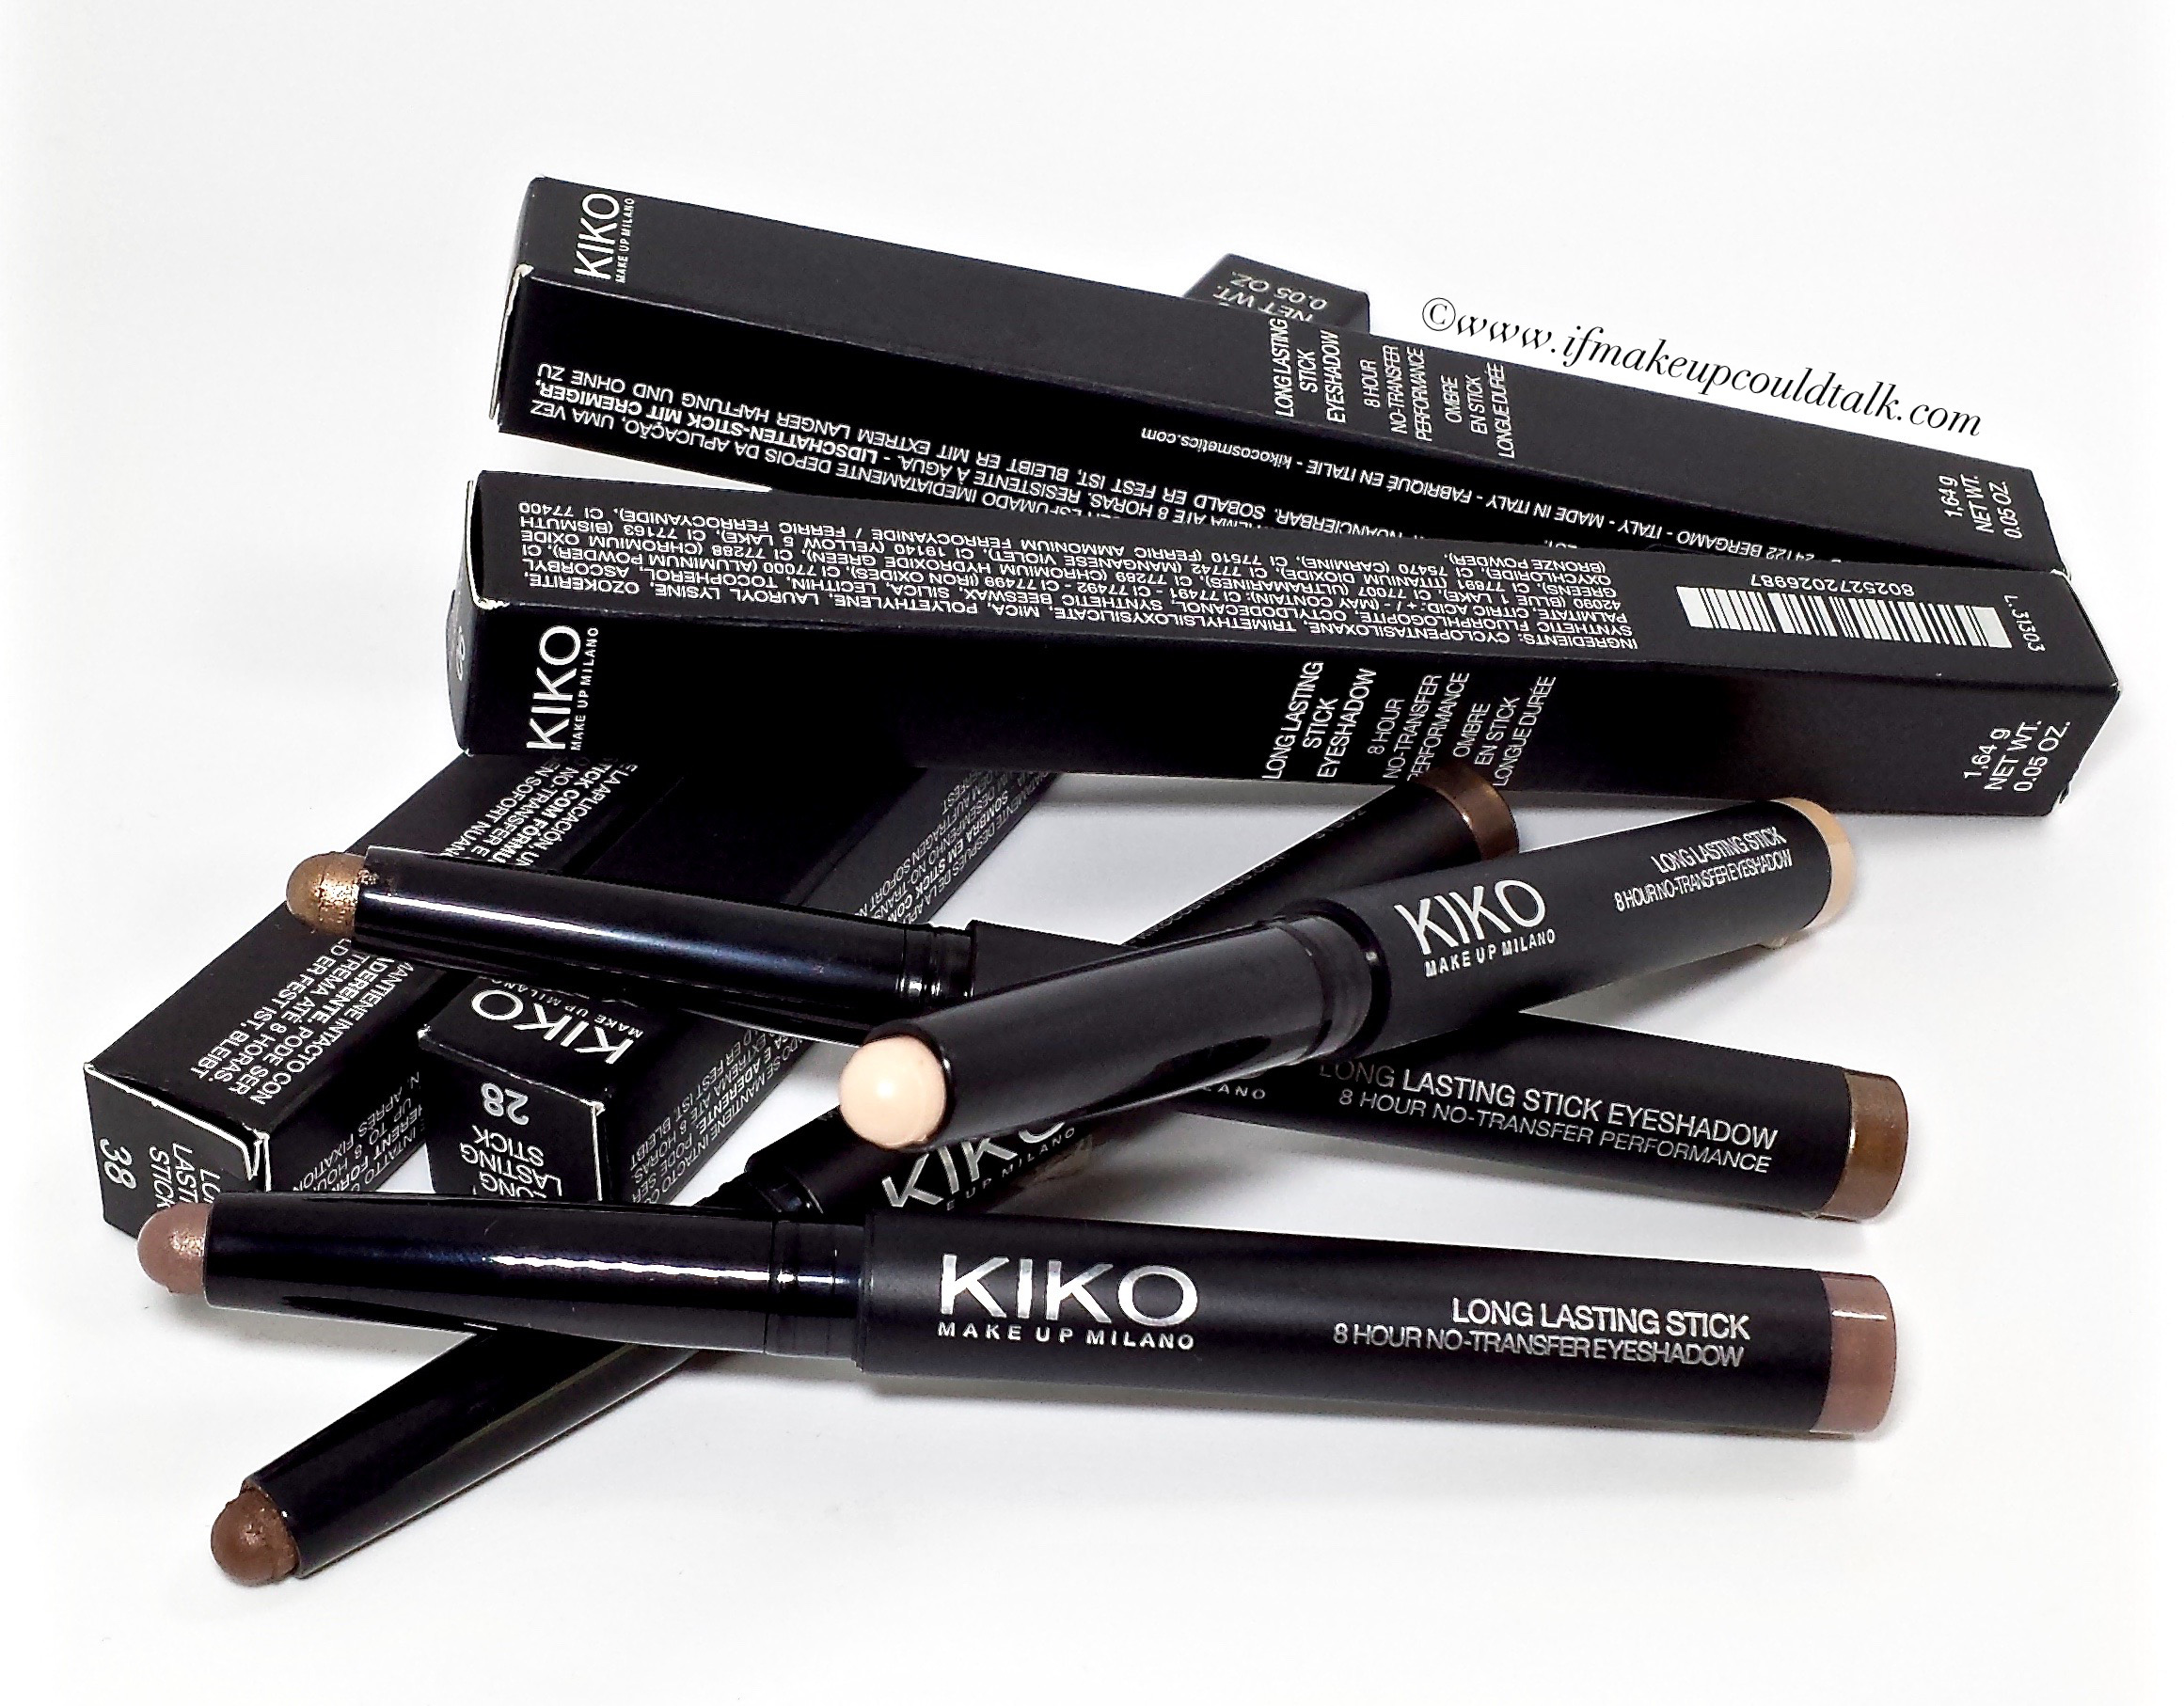 Kiko Long Lasting Stick Eyeshadow review, swatches  and looks.